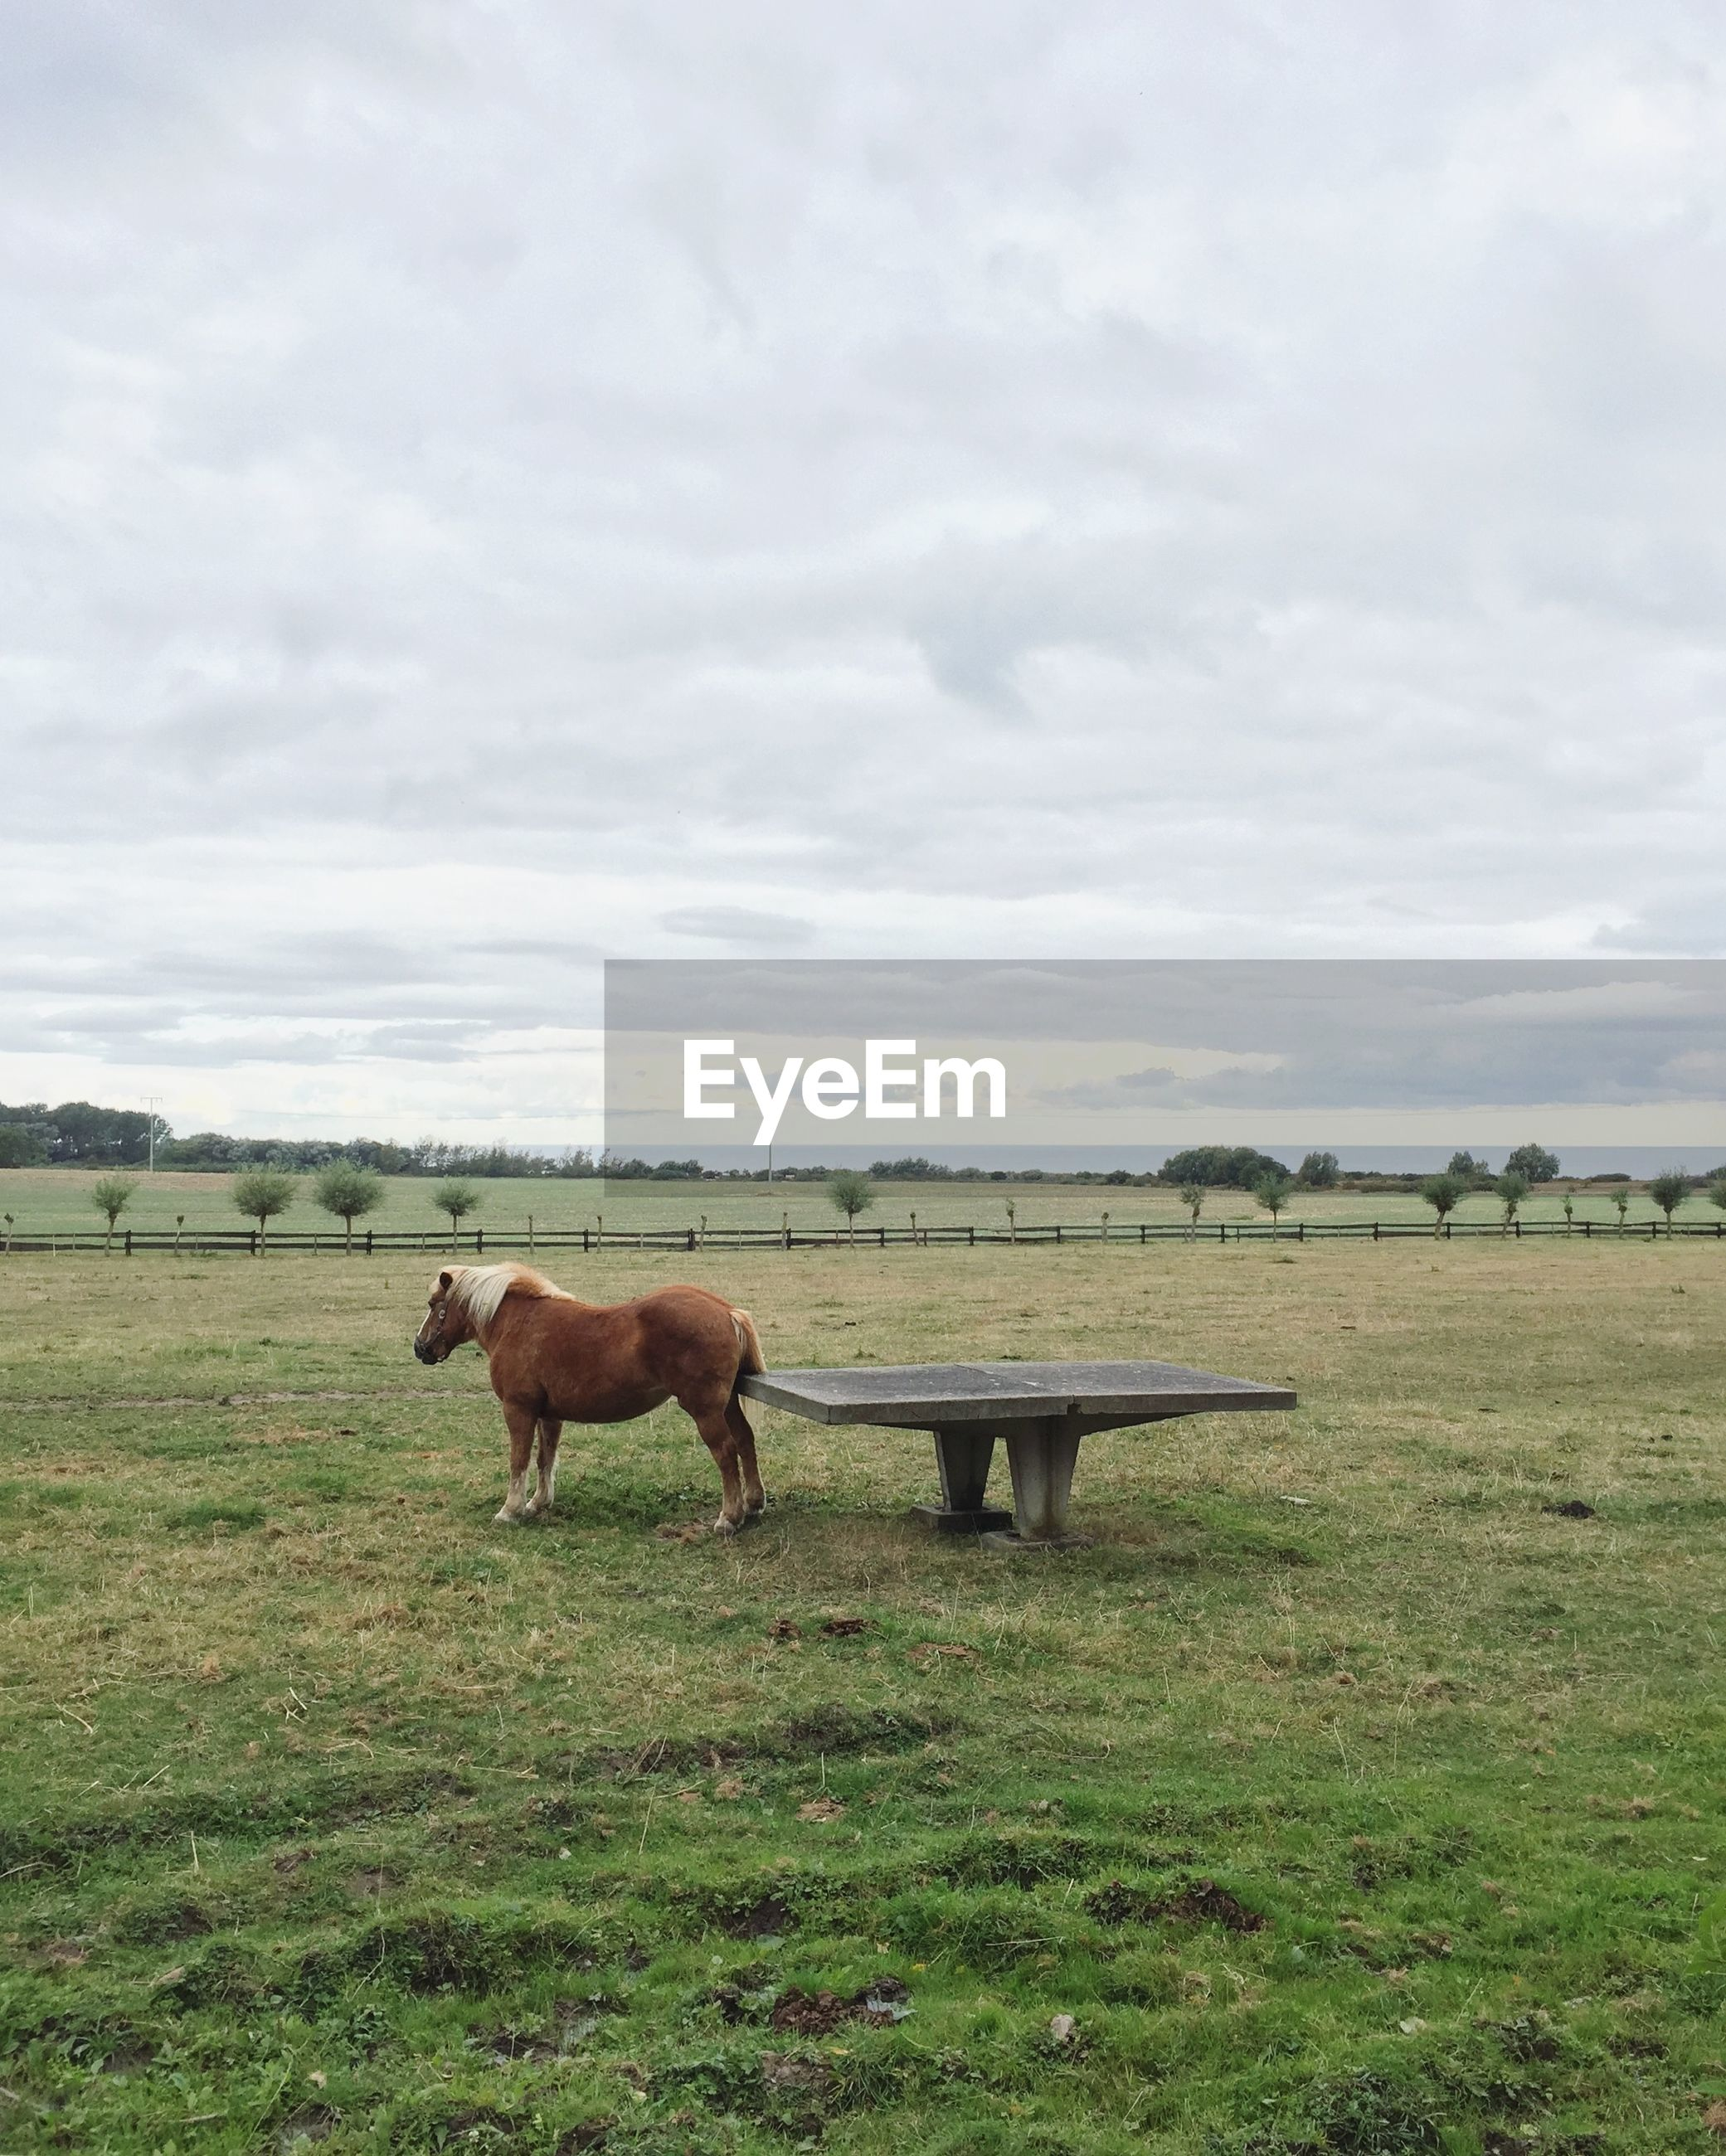 Horses standing by bench on grassy field against cloudy sky